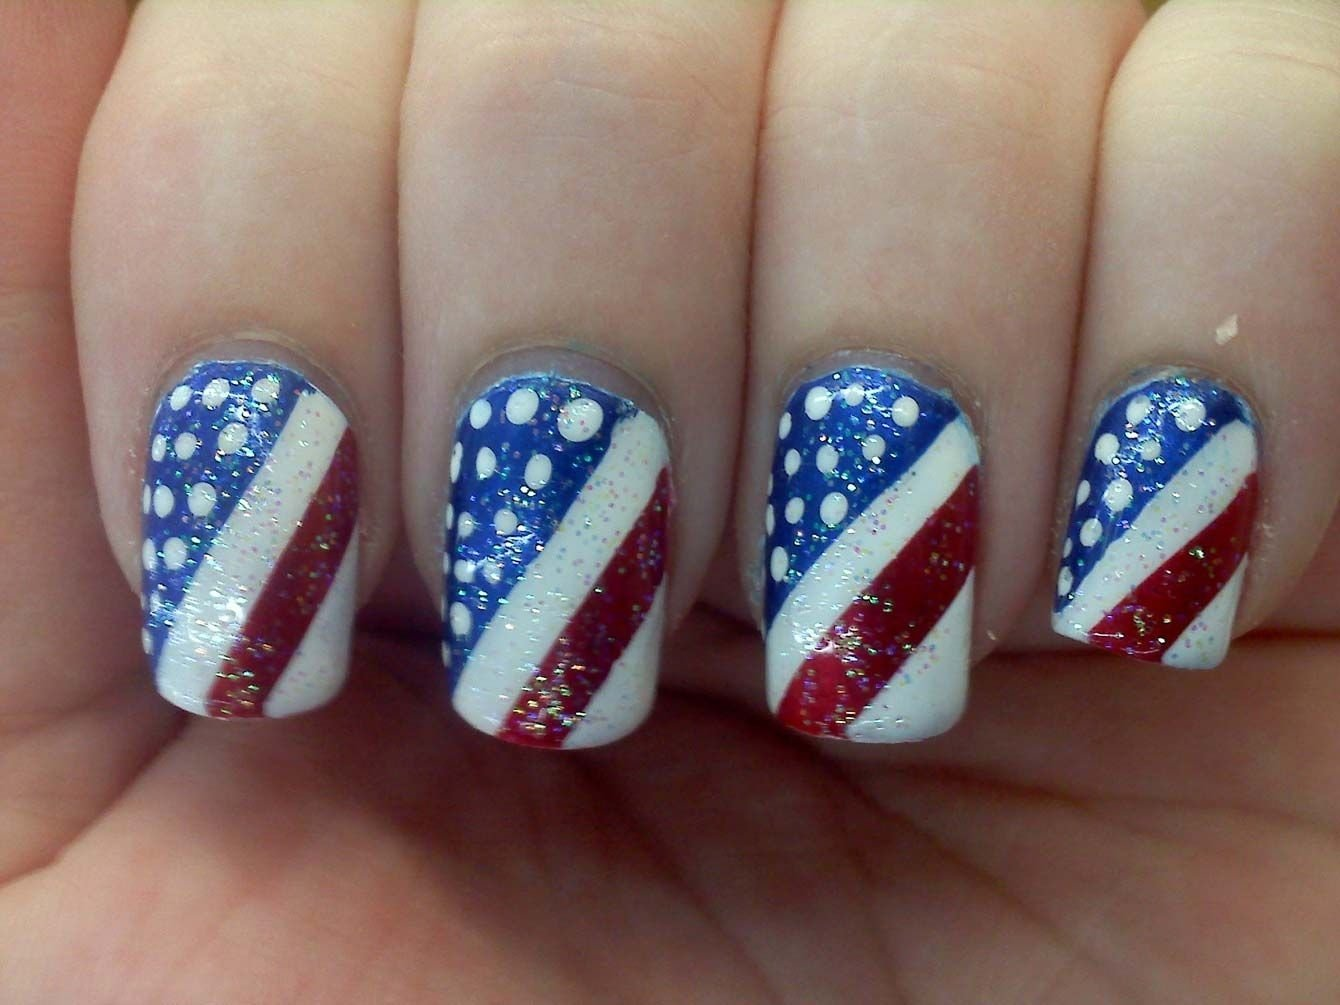 10 Awesome Fourth Of July Nail Art Ideas 8 techniques for 4th july nails nails pinterest nail nail and 2